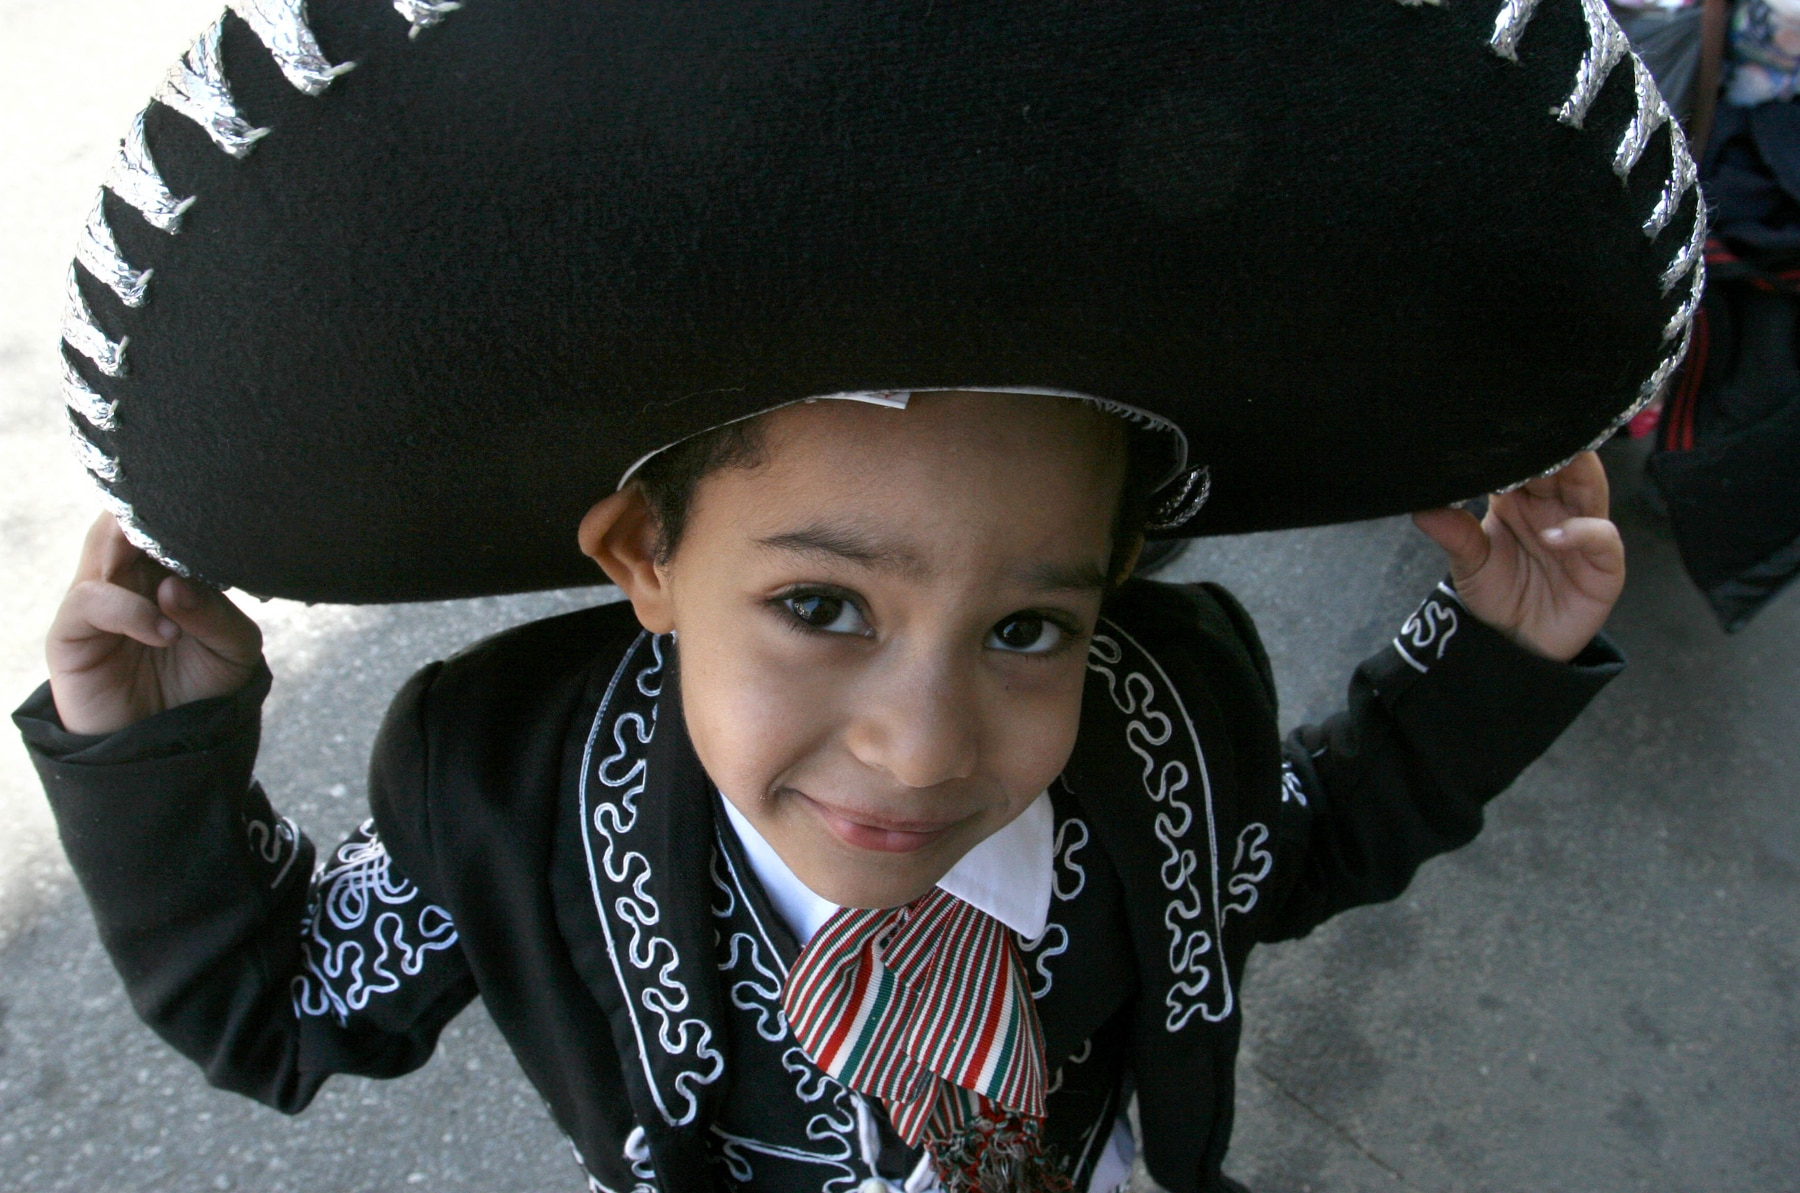 Boy wearing mariachi costume (© AP Images)